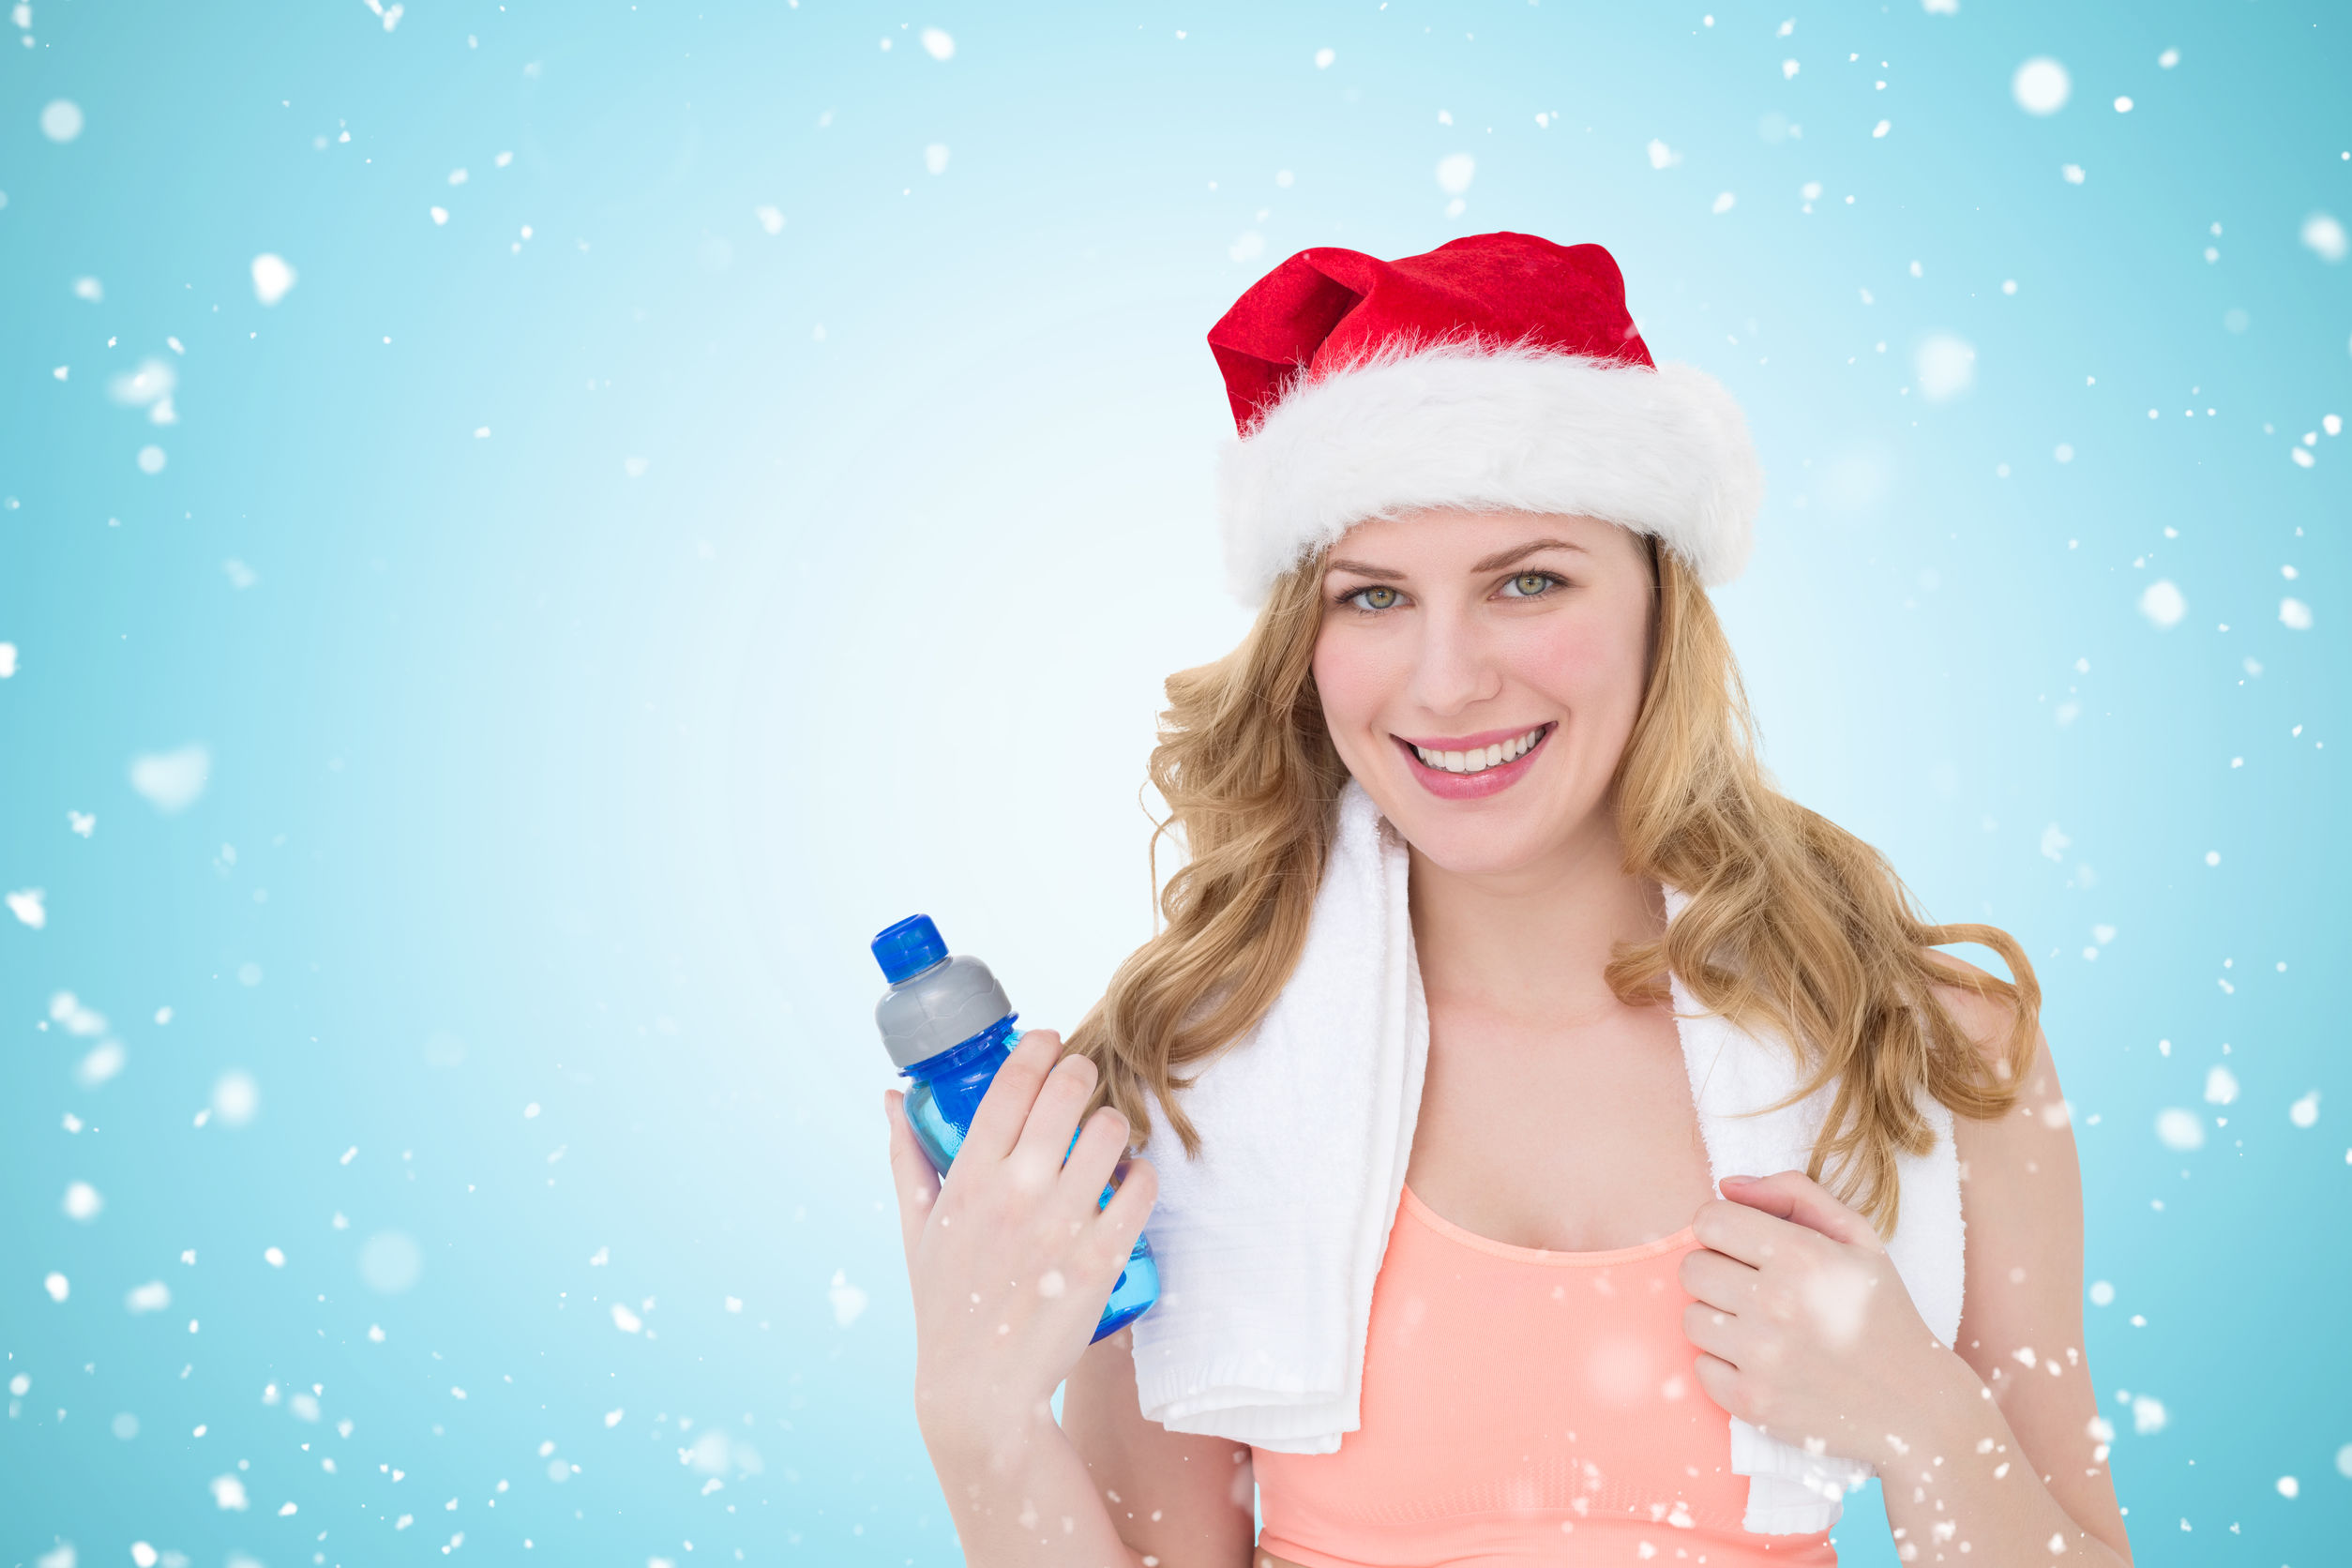 66779333 - festive fit blonde holding bottle of water against christmas snow falling